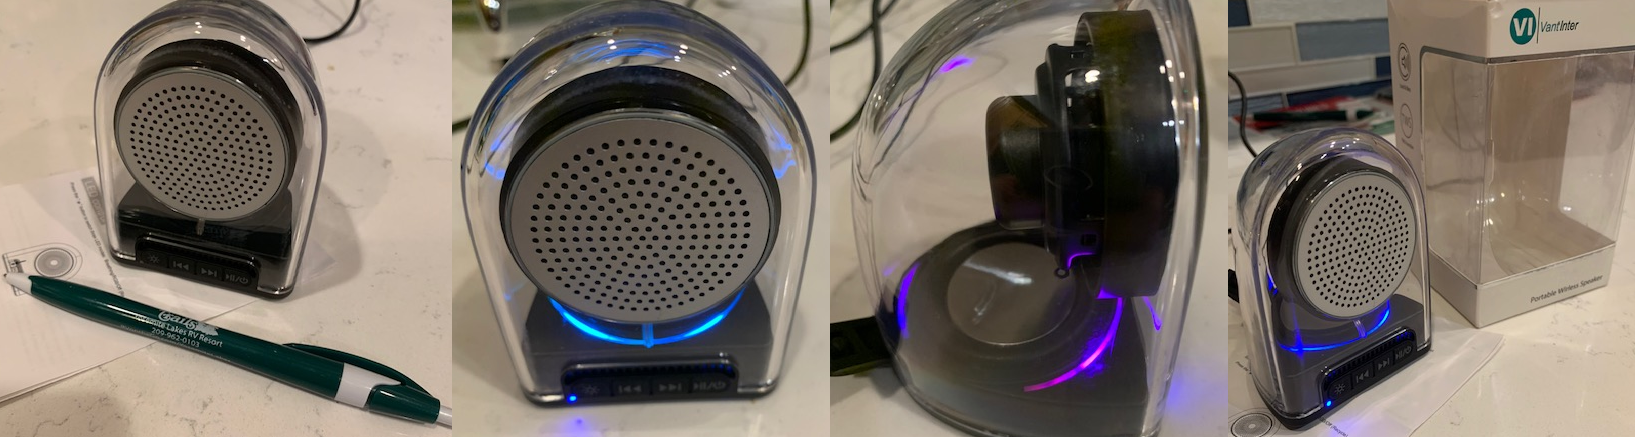 It's small in size, but really pumps out the music!